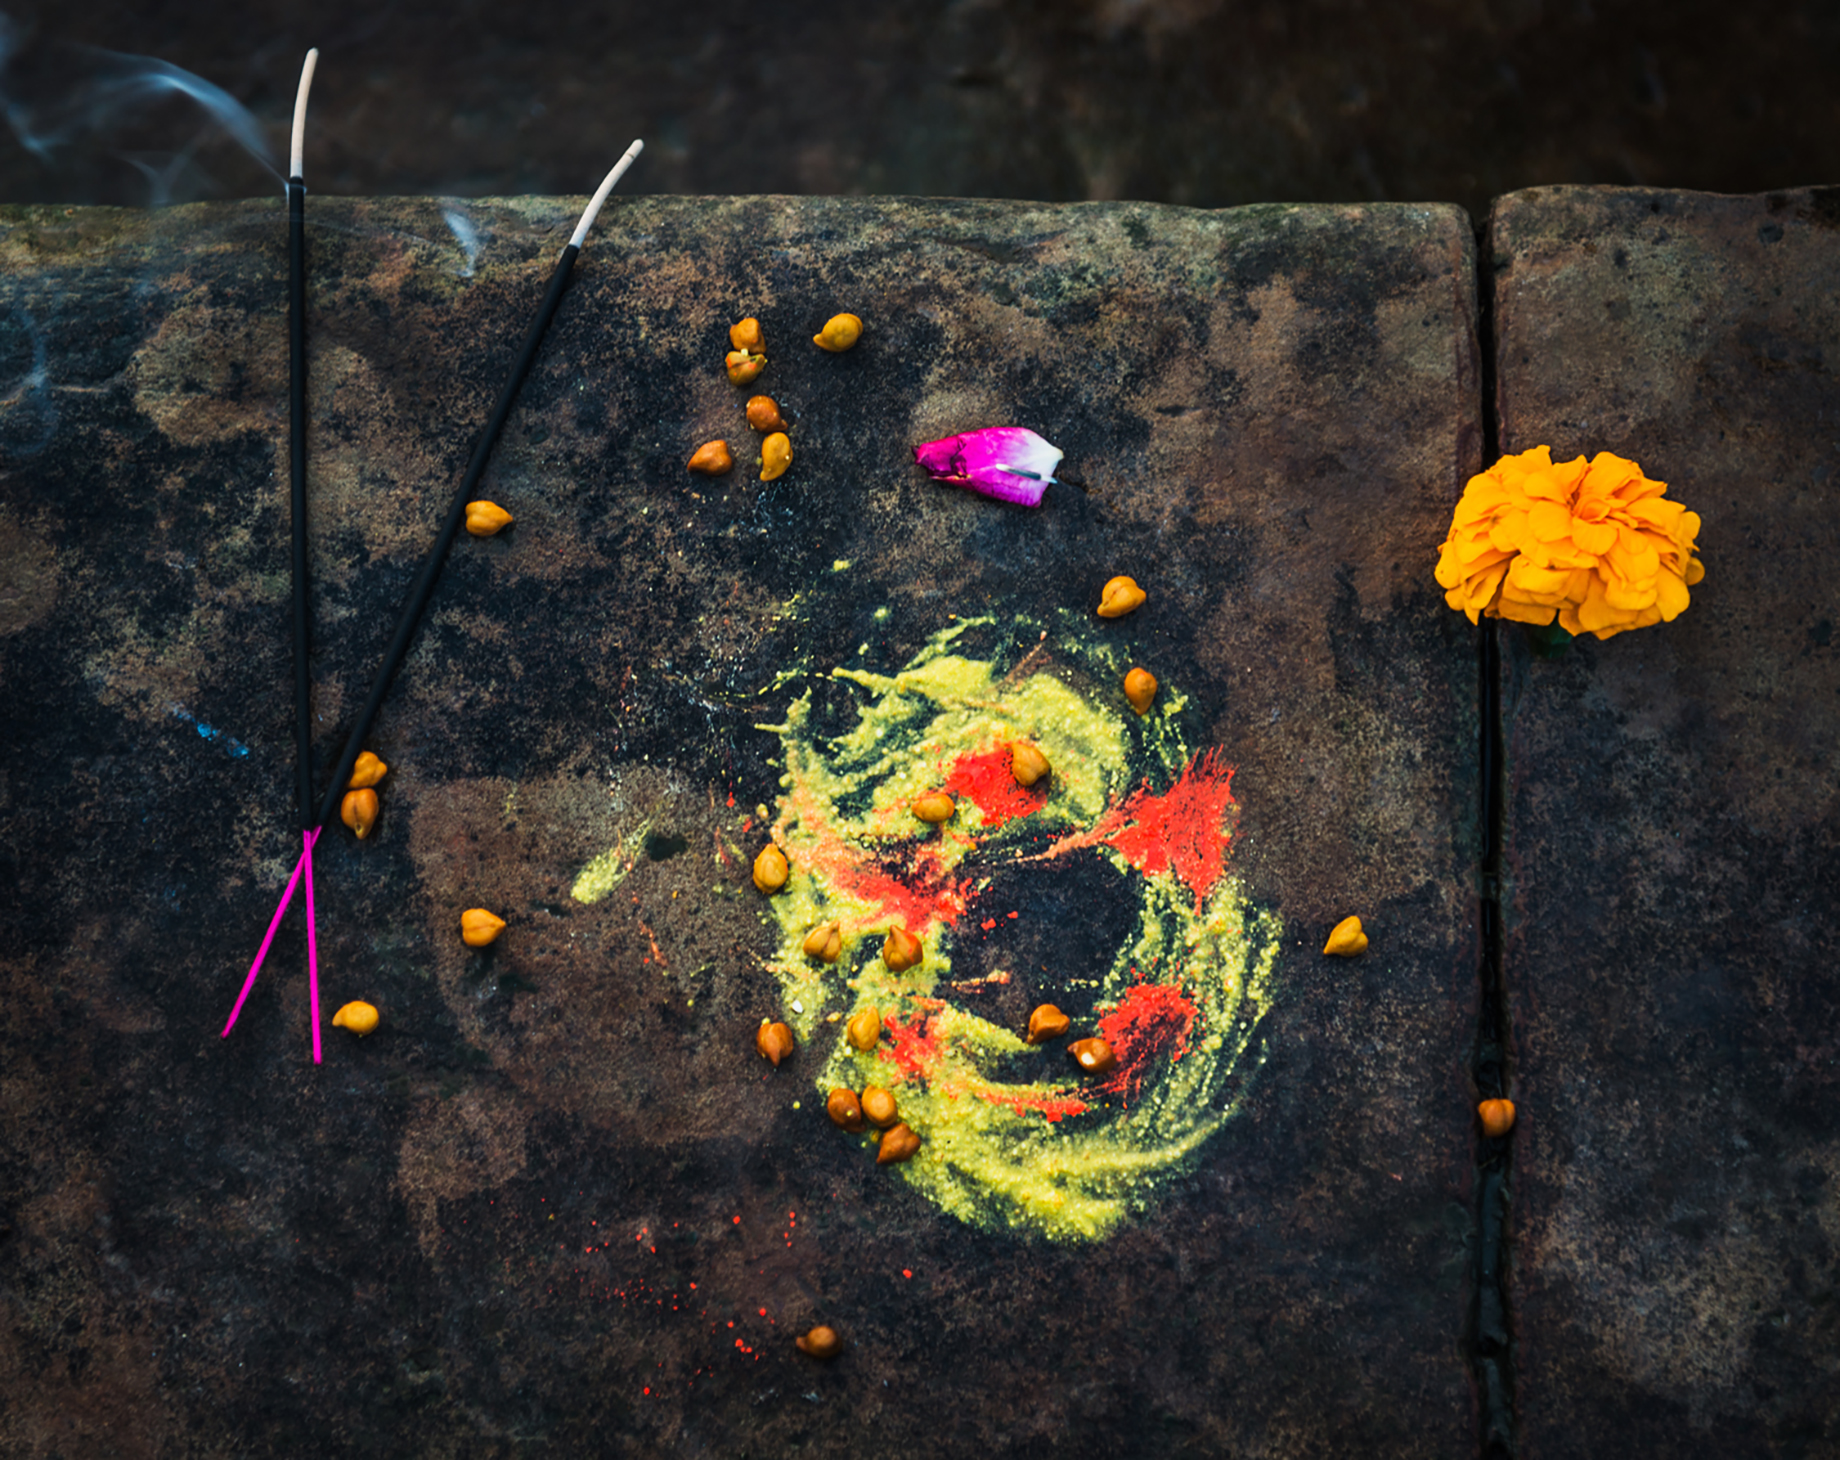 Incense, flowers, and colorful dyes shot by Michael Marquand for Lodestars Anthology